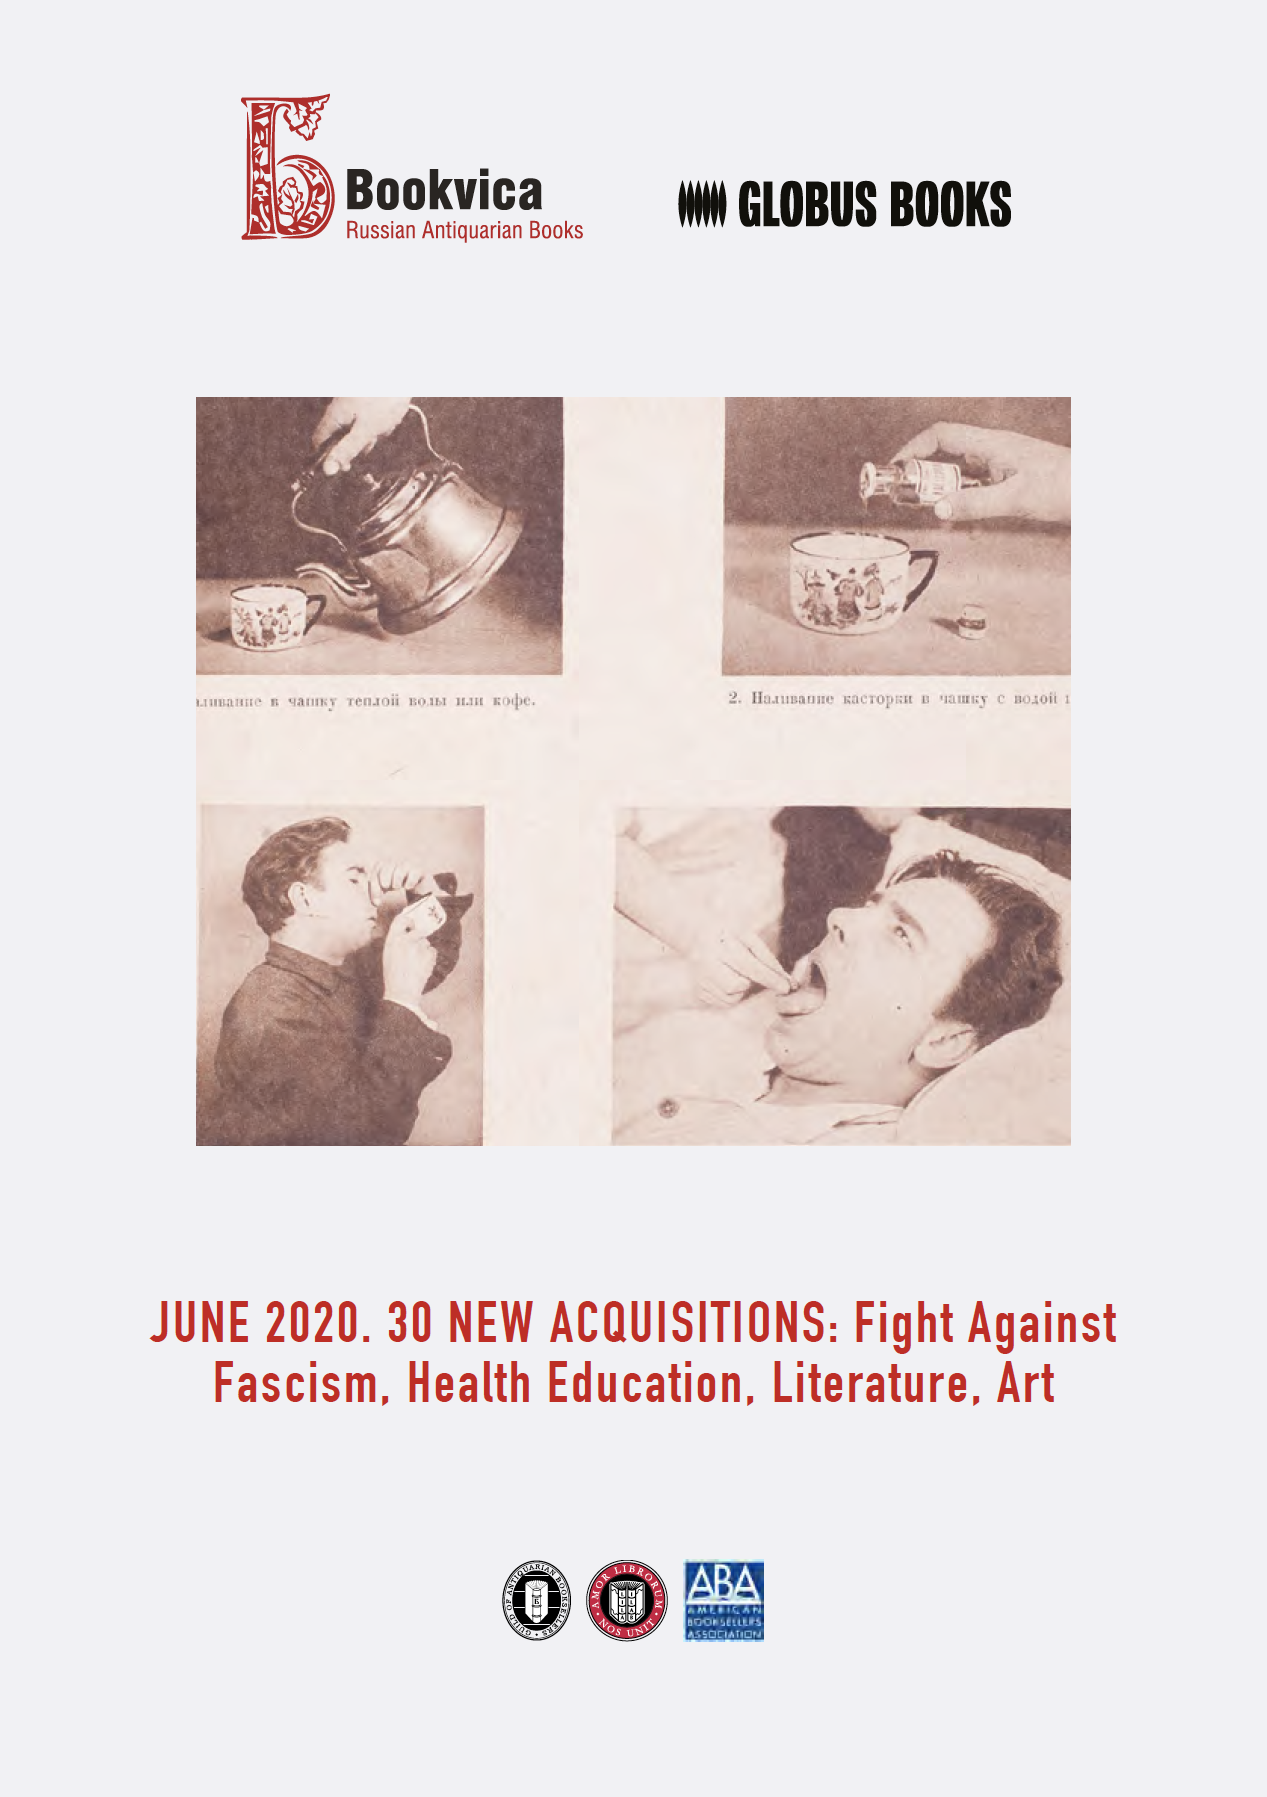 June 2020. 30 New Acquisitions